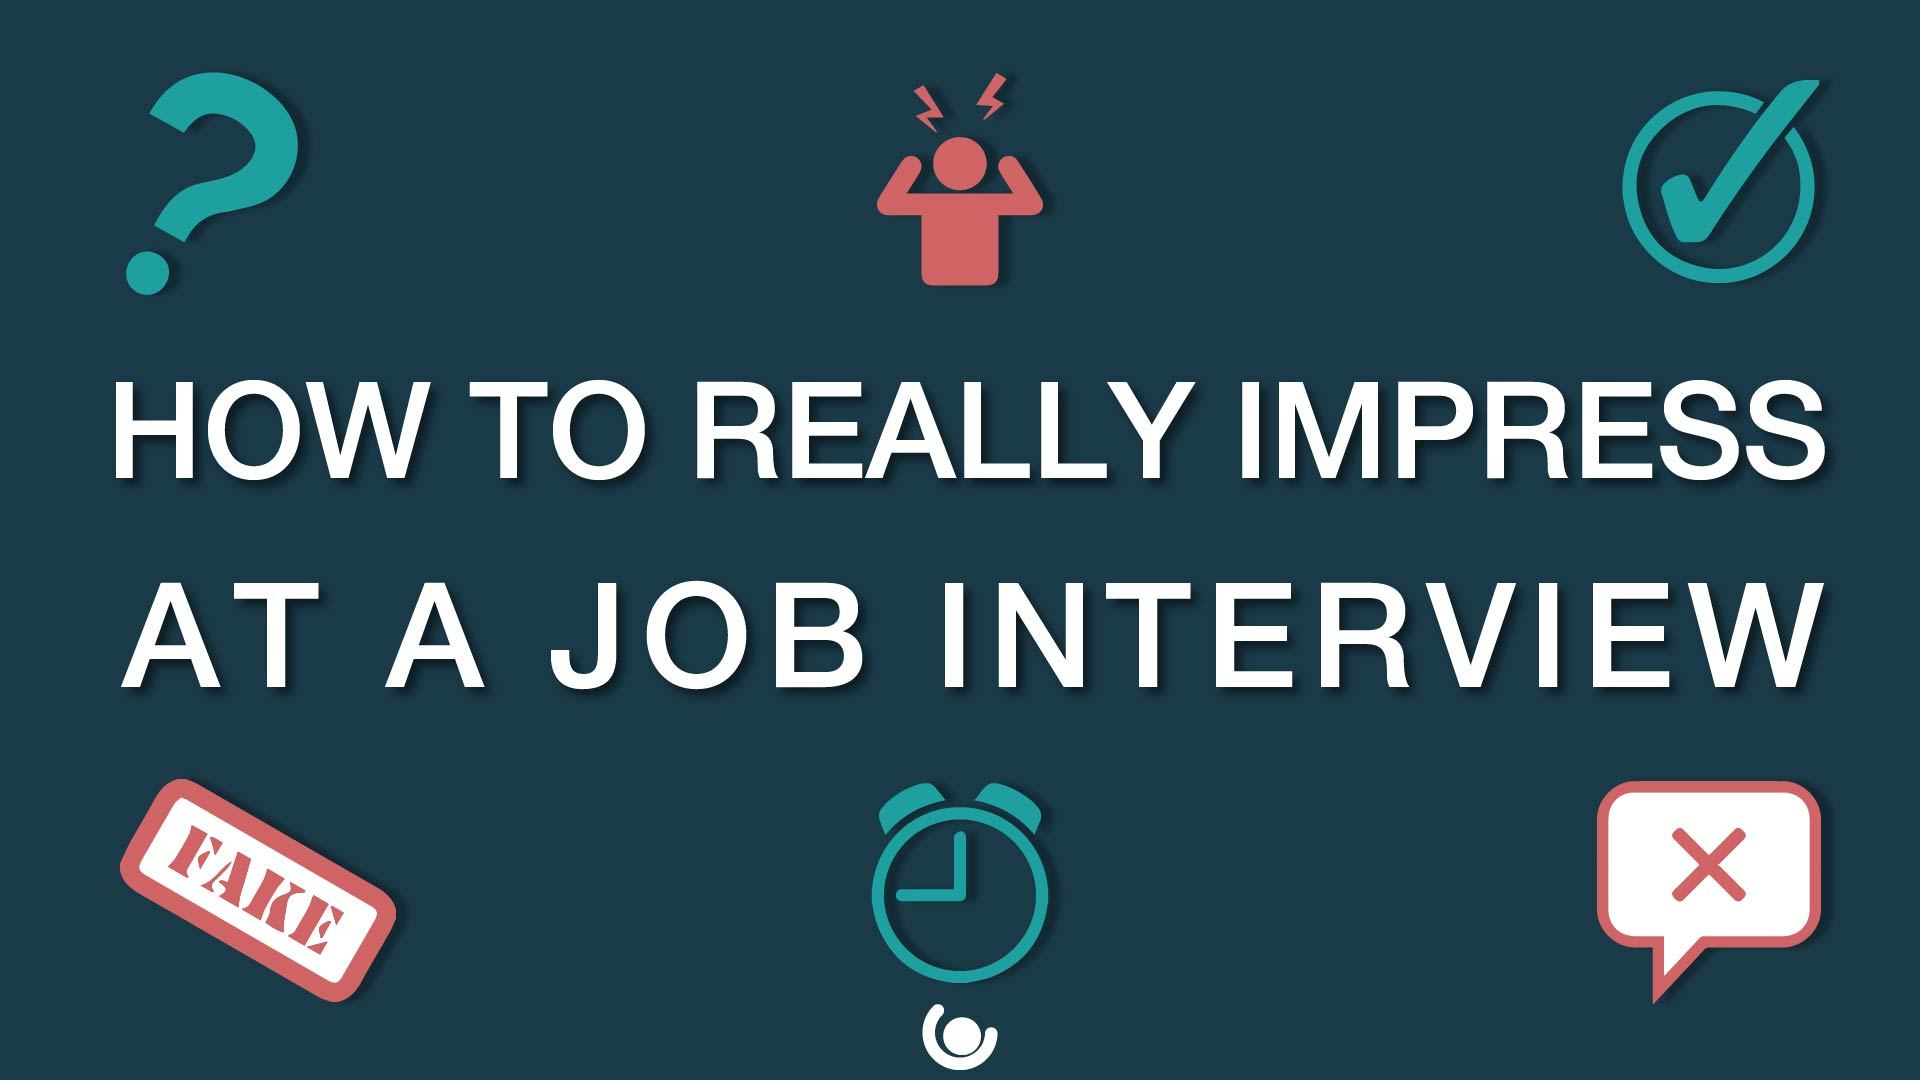 How-to-really-impress-at-a-job-interview-banner-01-2